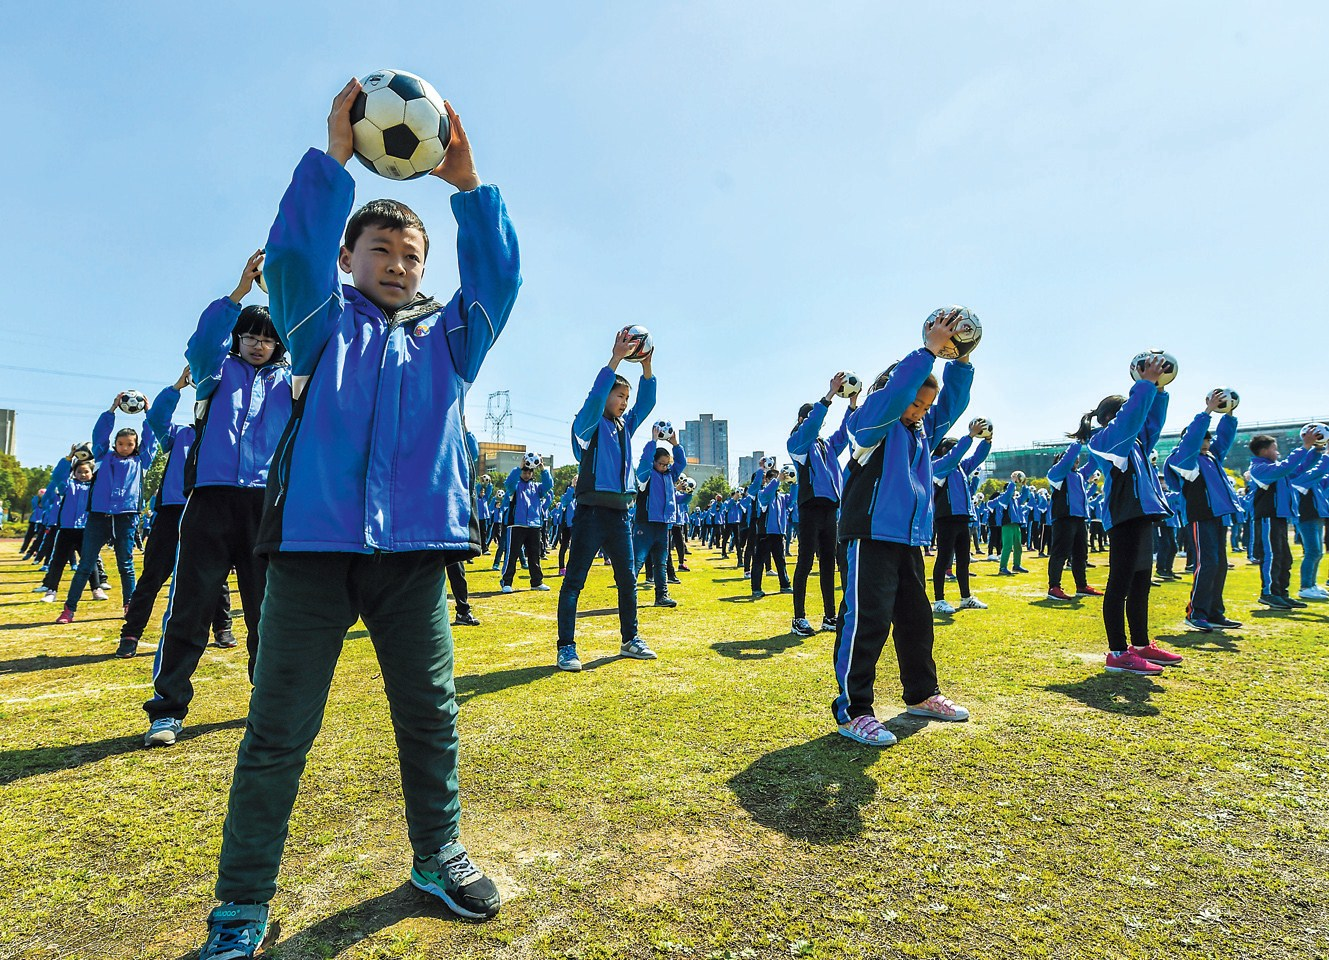 Students at the Changxing County No. 6 Primary School in east China's Zhejiang Province gather together for football drills during class breaks. The school offers professional football course and specializes in training young players for professional teams. — Xinhua